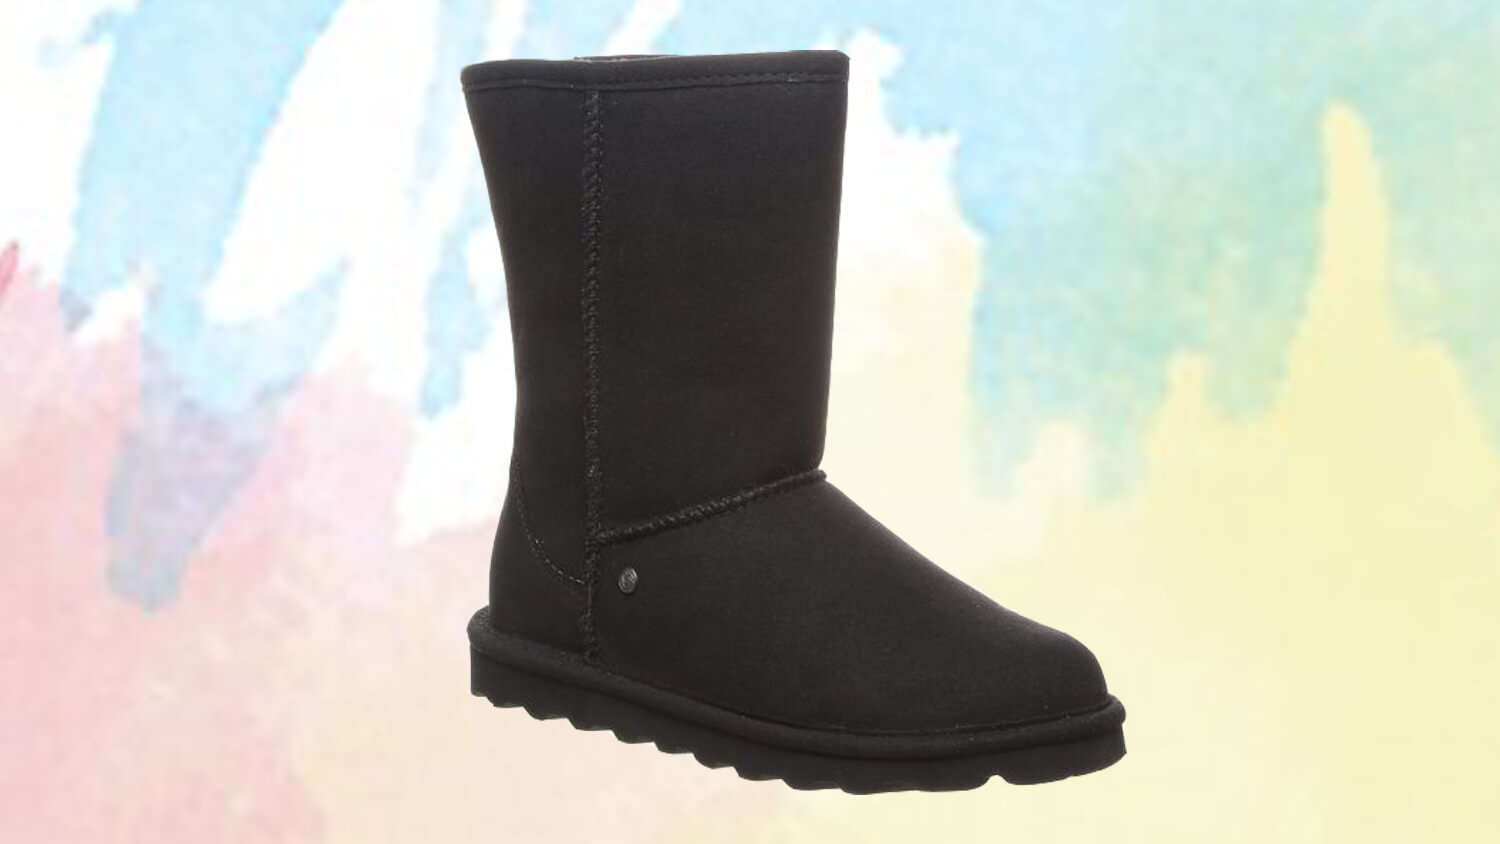 California's Bearpaw Launches Vegan Wool-Free Ugg-Style Winter Boots